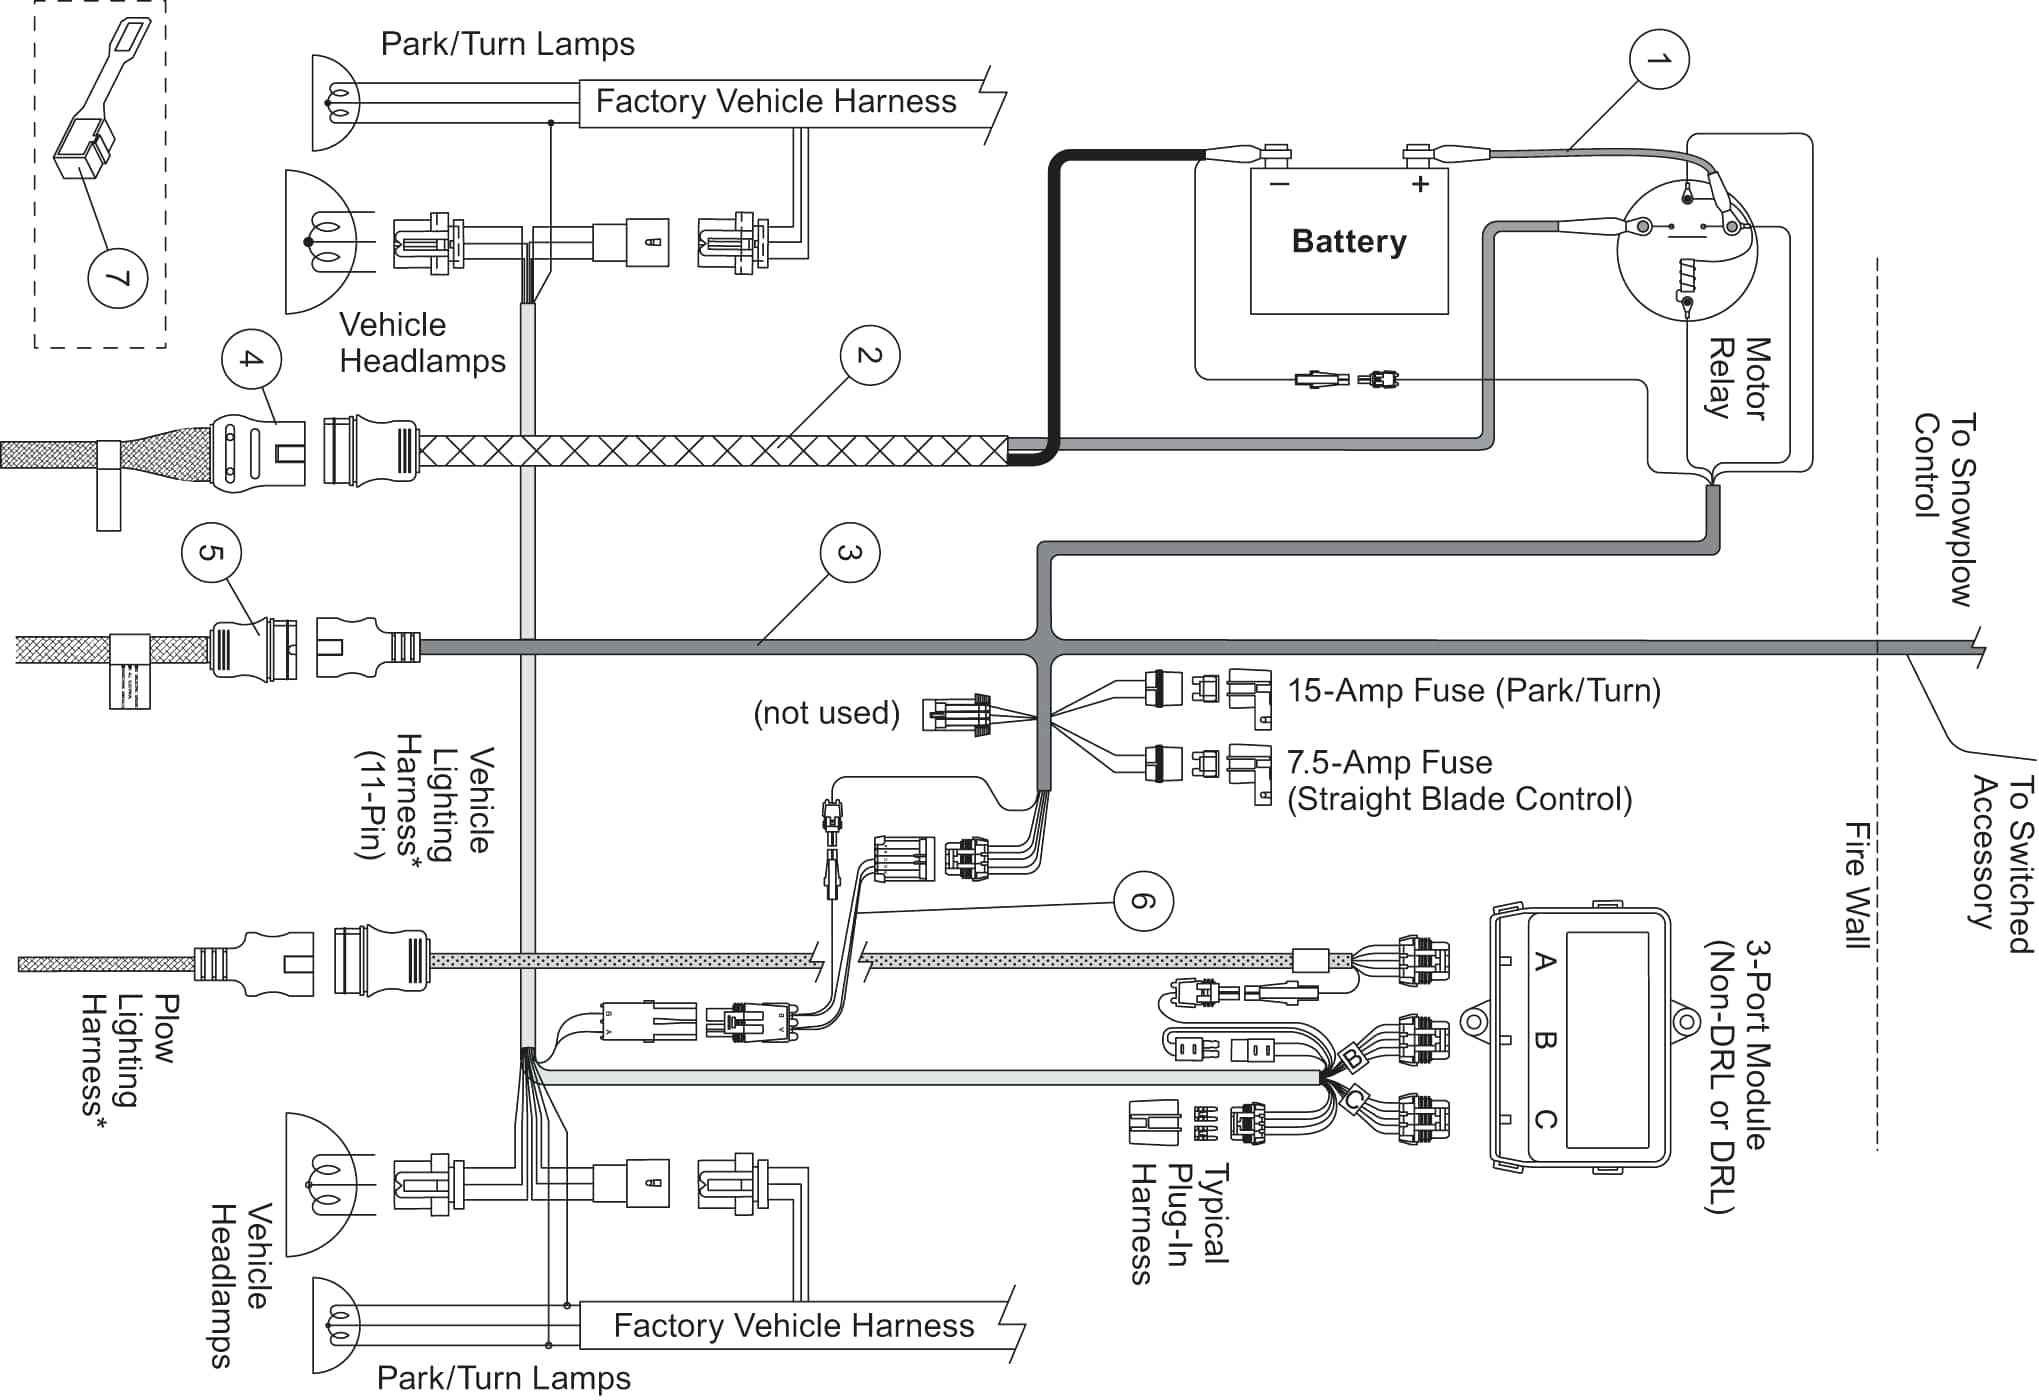 Western Plow Light Wiring Diagram Meyers Snow Harness And Unimount - Boss Snow Plow Wiring Diagram